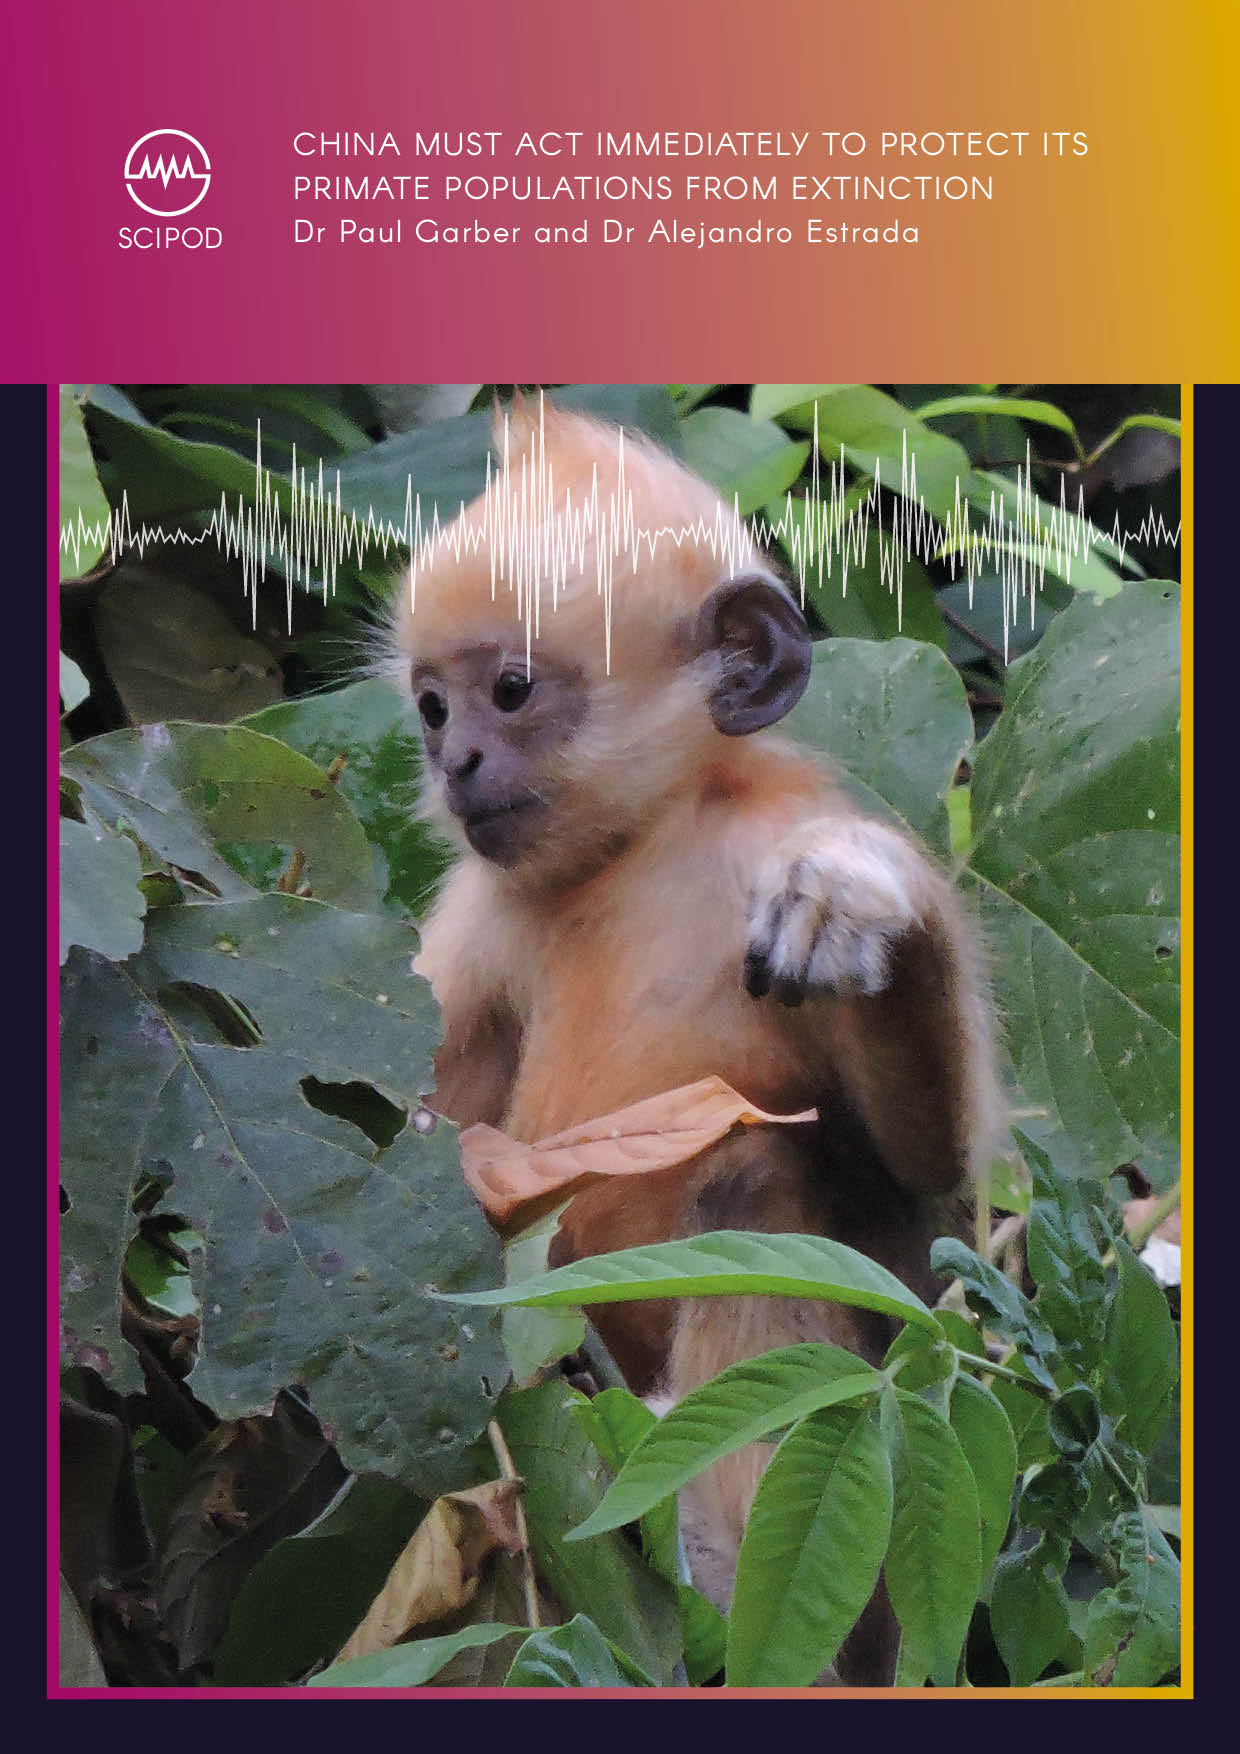 China Must Act Immediately to Protect its Primate Populations from Extinction -Dr Paul Garber  and Dr Alejandro Estrada